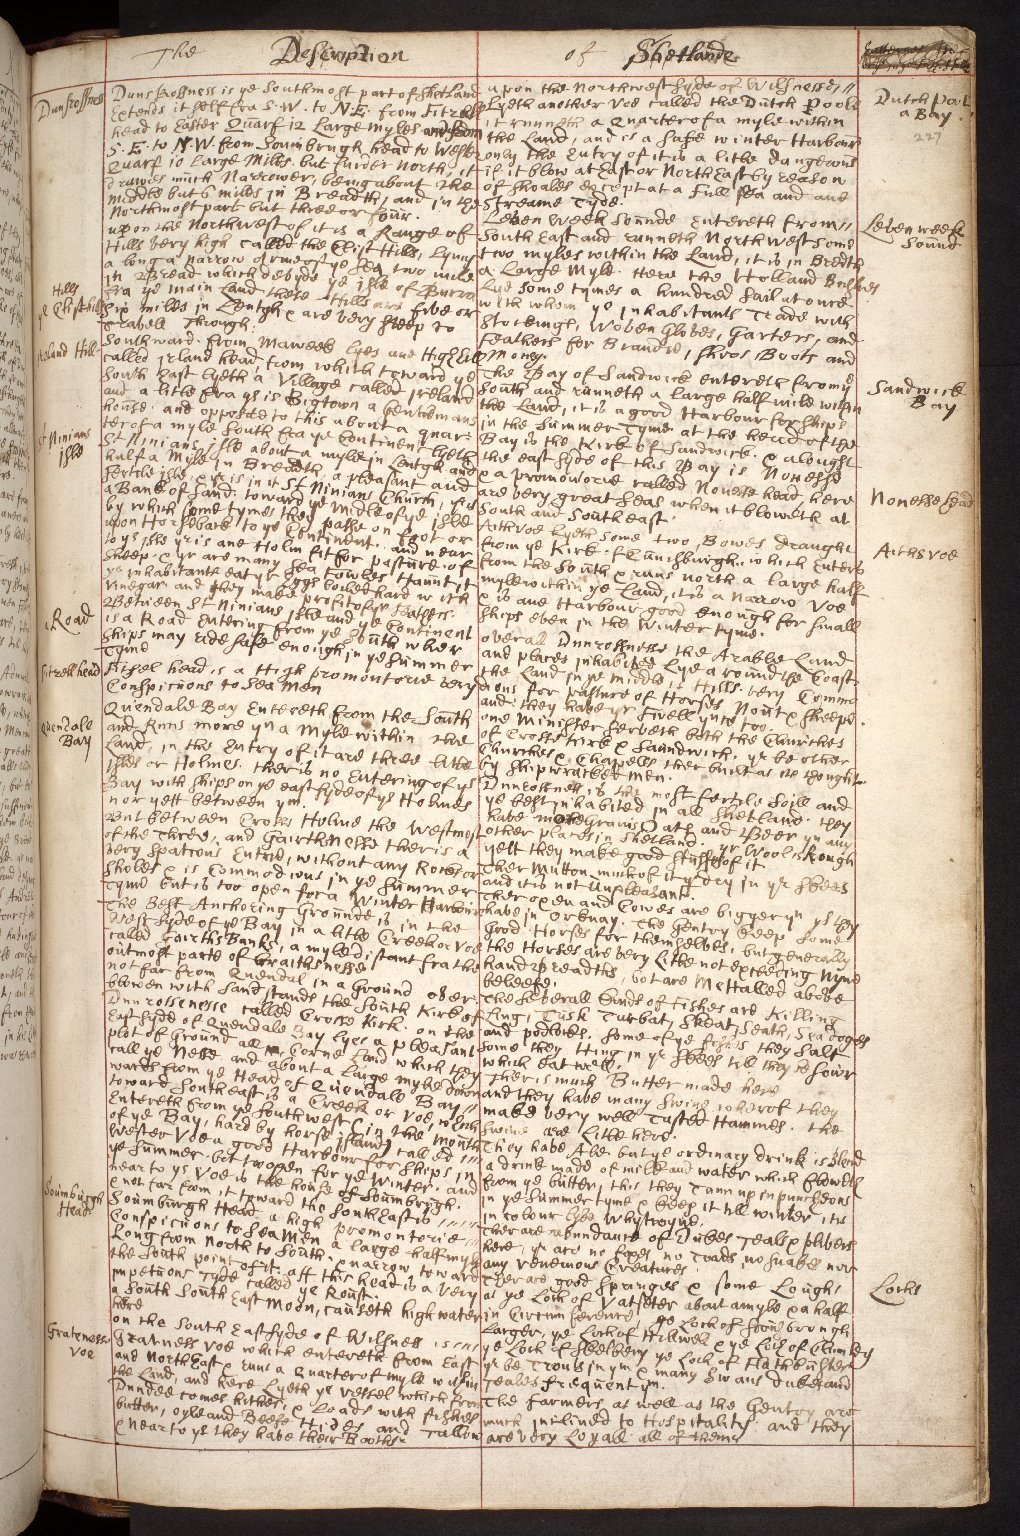 Atlas Scoticus, or a Description of Scotland Ancient and Modern. [251 of 259]